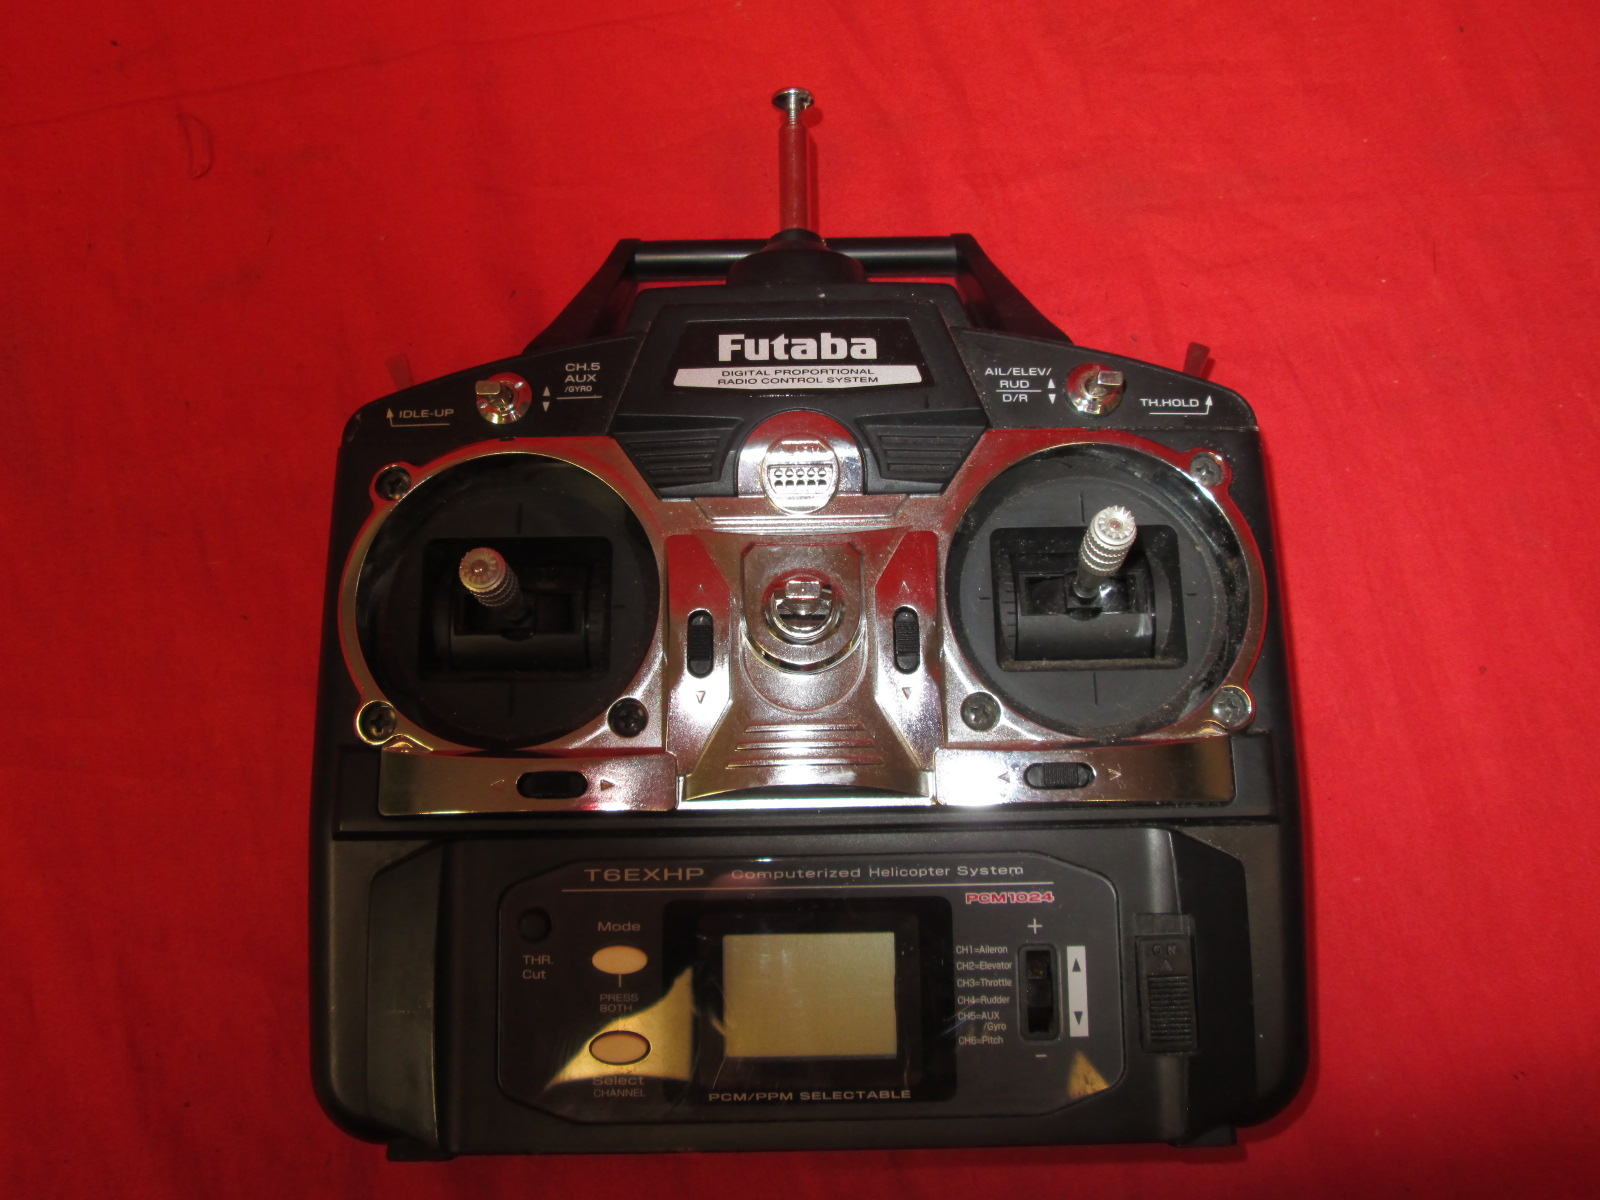 Futaba T6EXHP 6 Channel Computerized Helicopter Remote 72.910 MHz